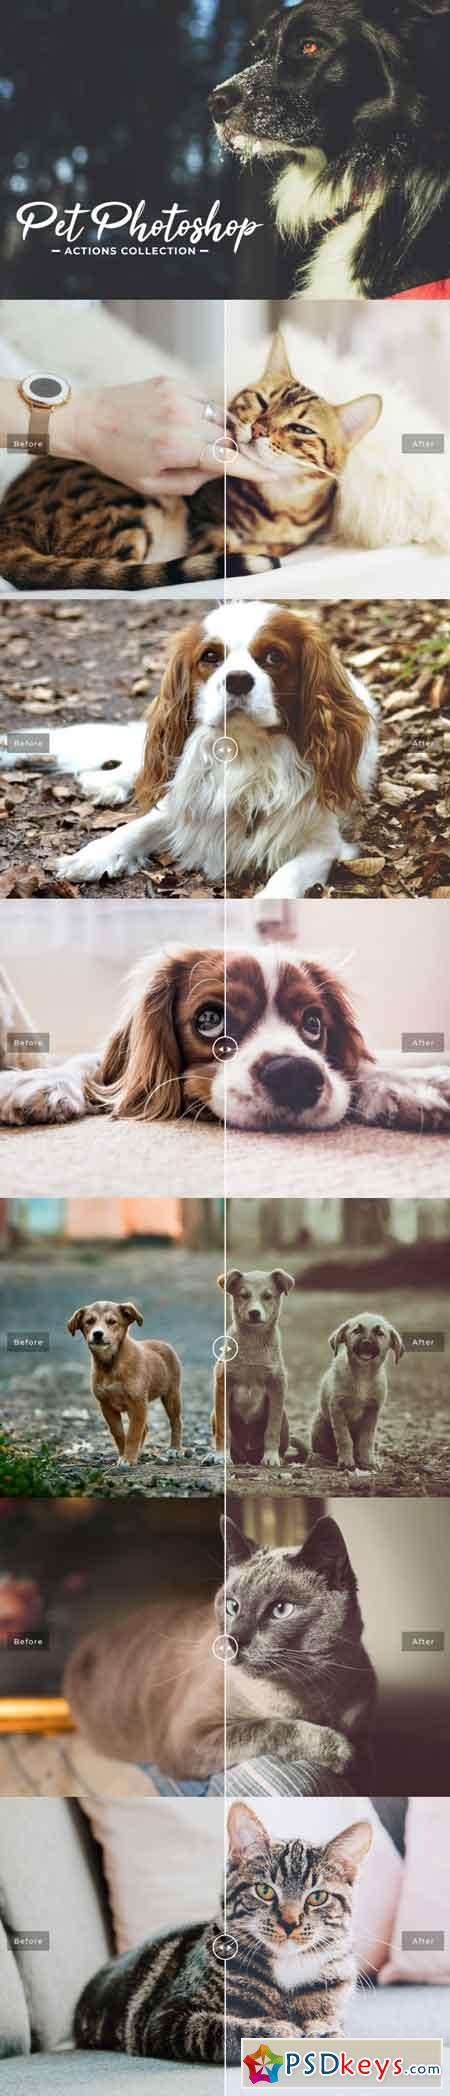 Pet Photoshop Actions Collection 3470628